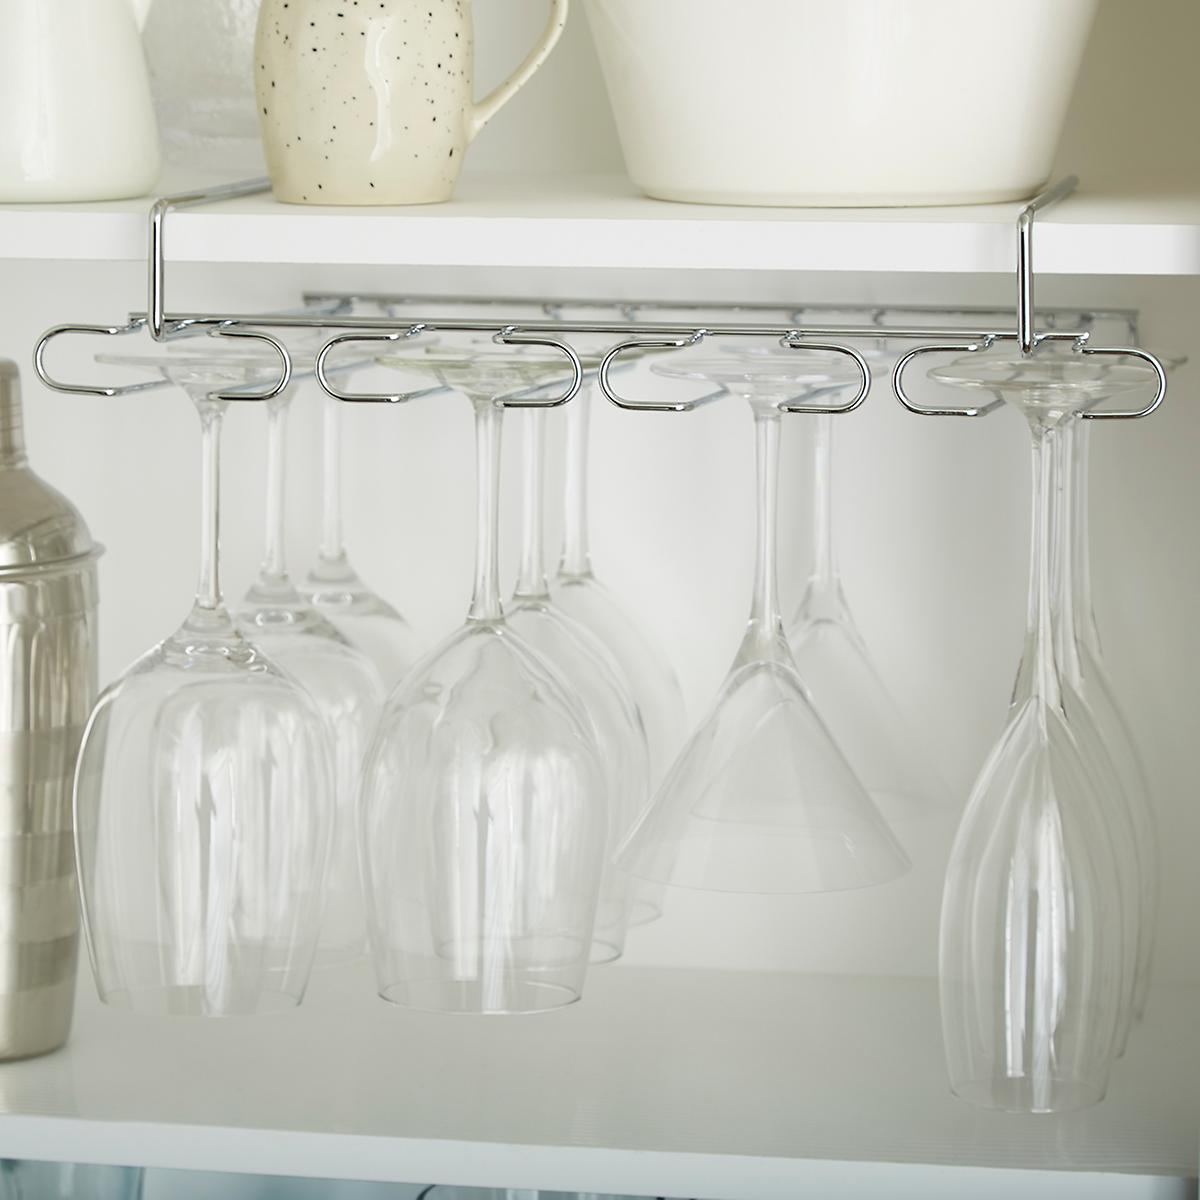 Upper Cabinet Organization Starter Kit The Container Store